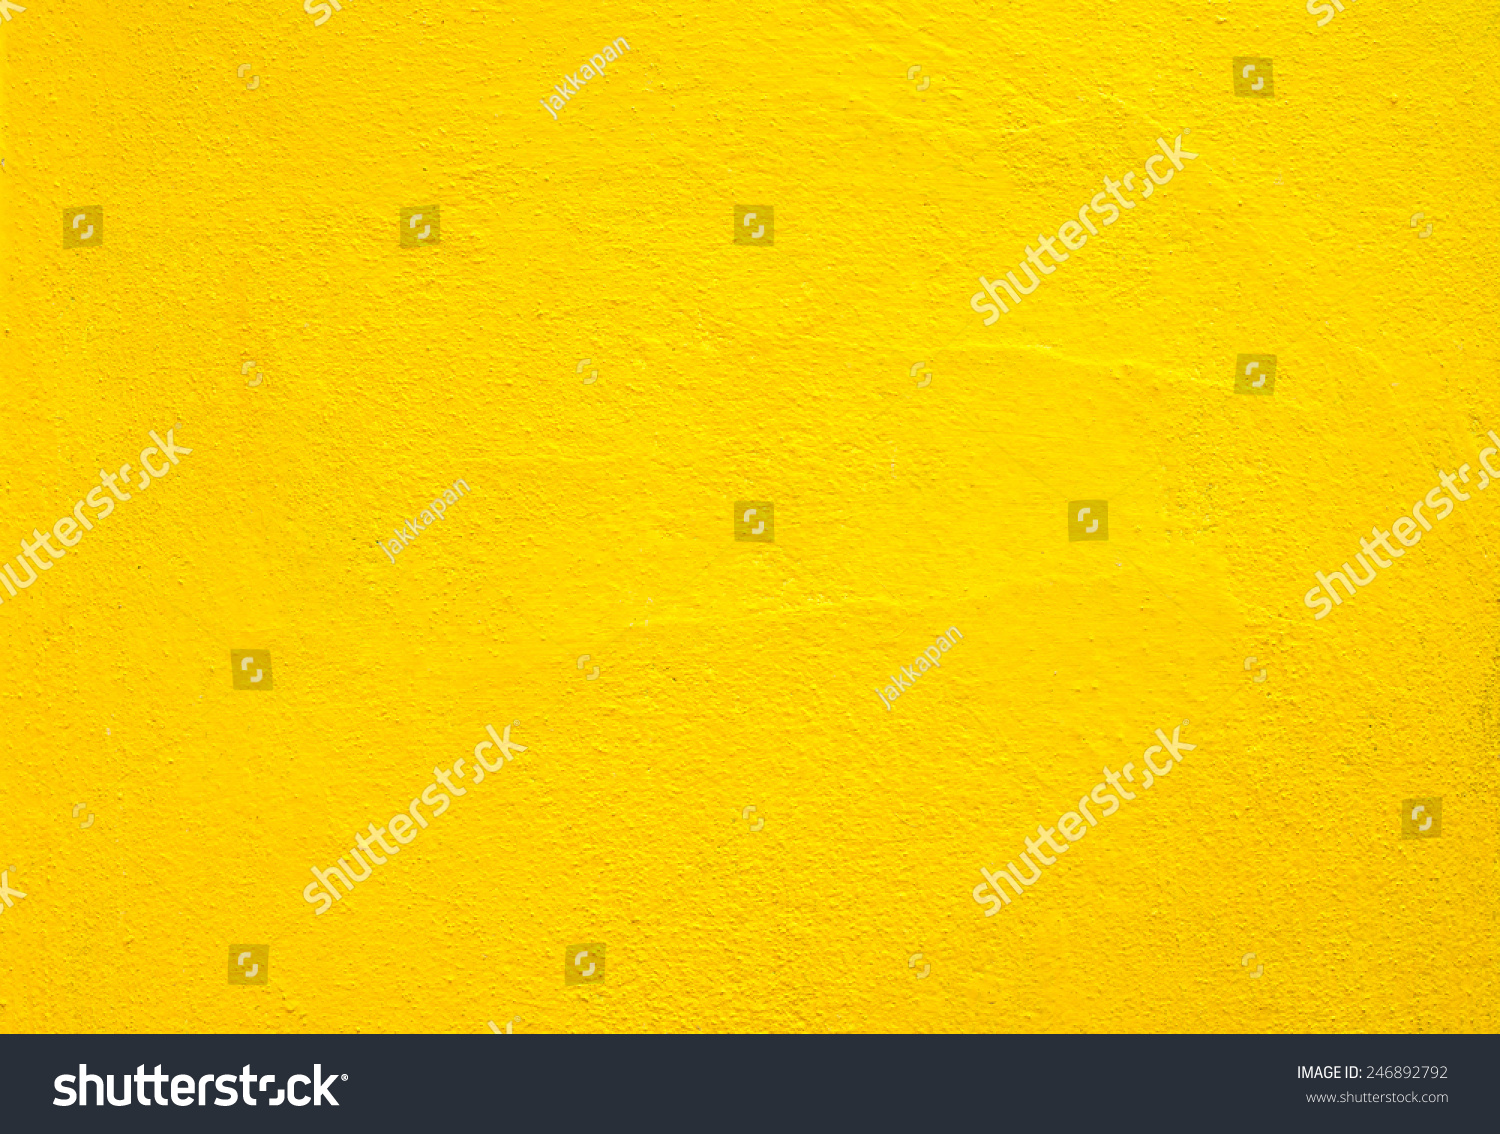 Concrete Wall Yellow Color Texture Background Stock Photo (Edit Now ...